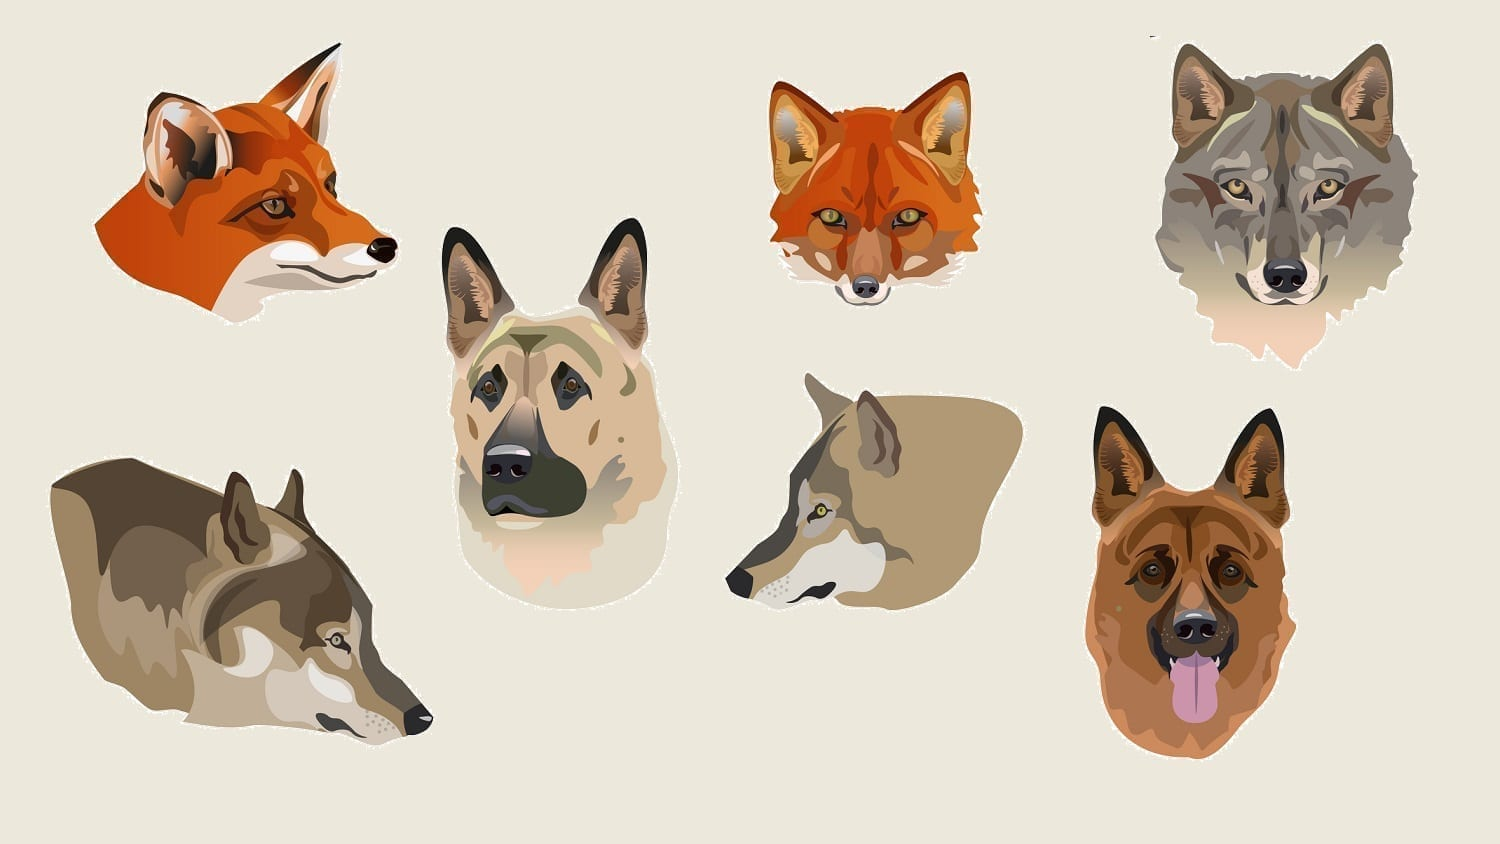 Artwork showing foxes, wolves, and dogs: Illustration 135375950 © Hhurzhi | Dreamstime.com